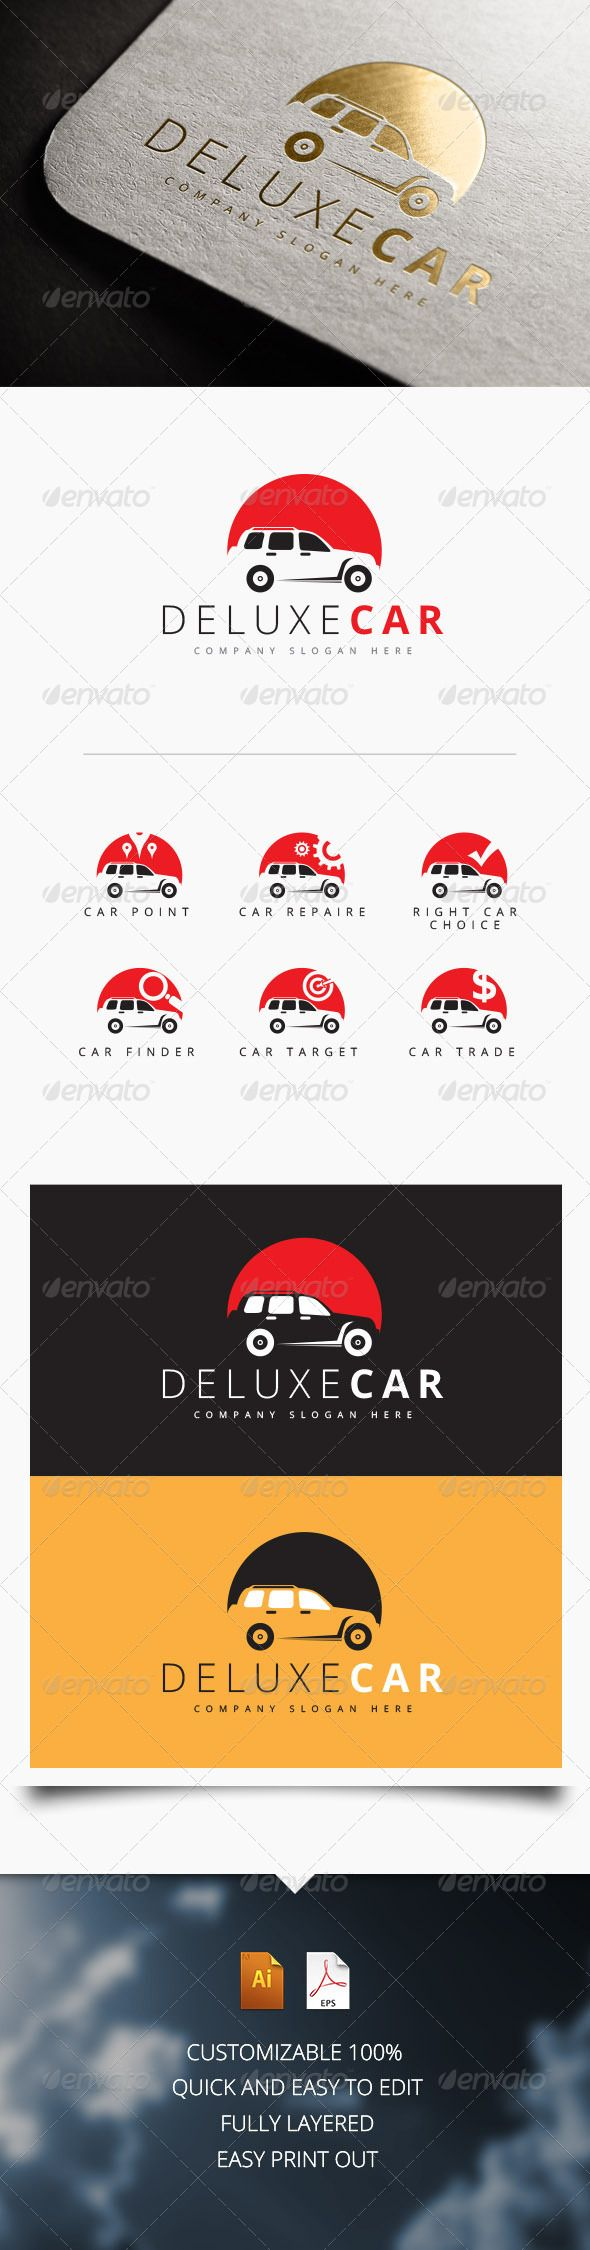 Deluxe Car Logo — Vector EPS #red #company logo • Available here → https://graphicriver.net/item/deluxe-car-logo/7522239?ref=pxcr